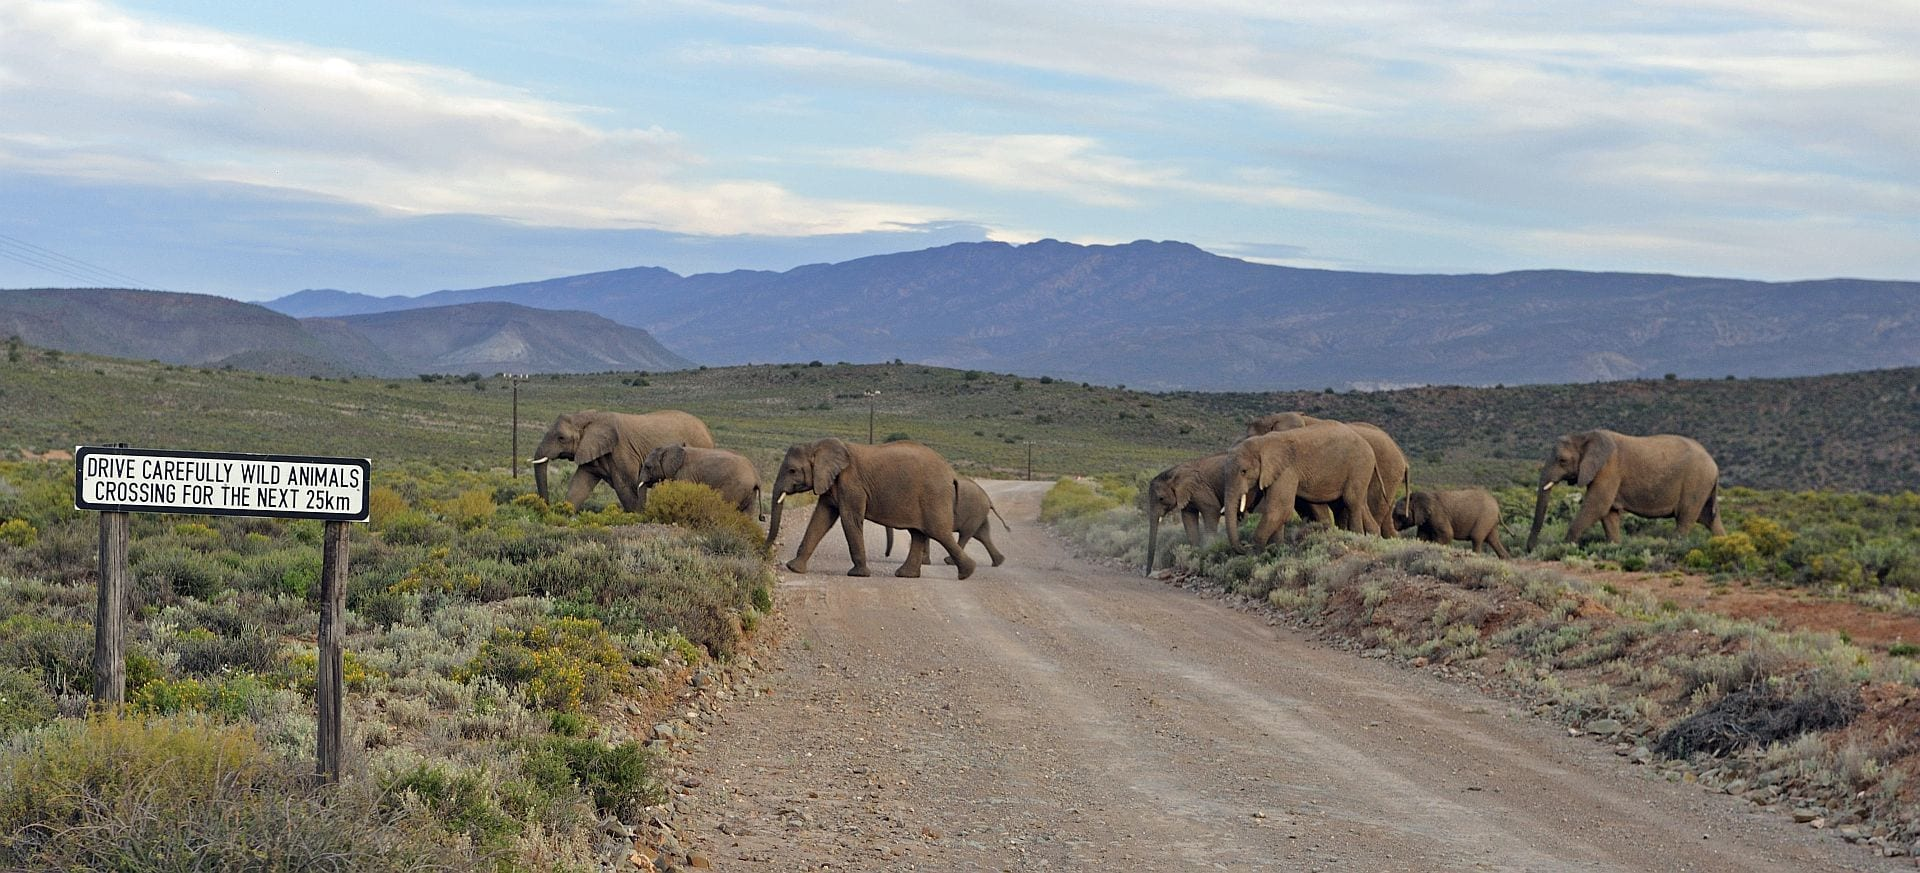 The Road Less Travelled in South Africa